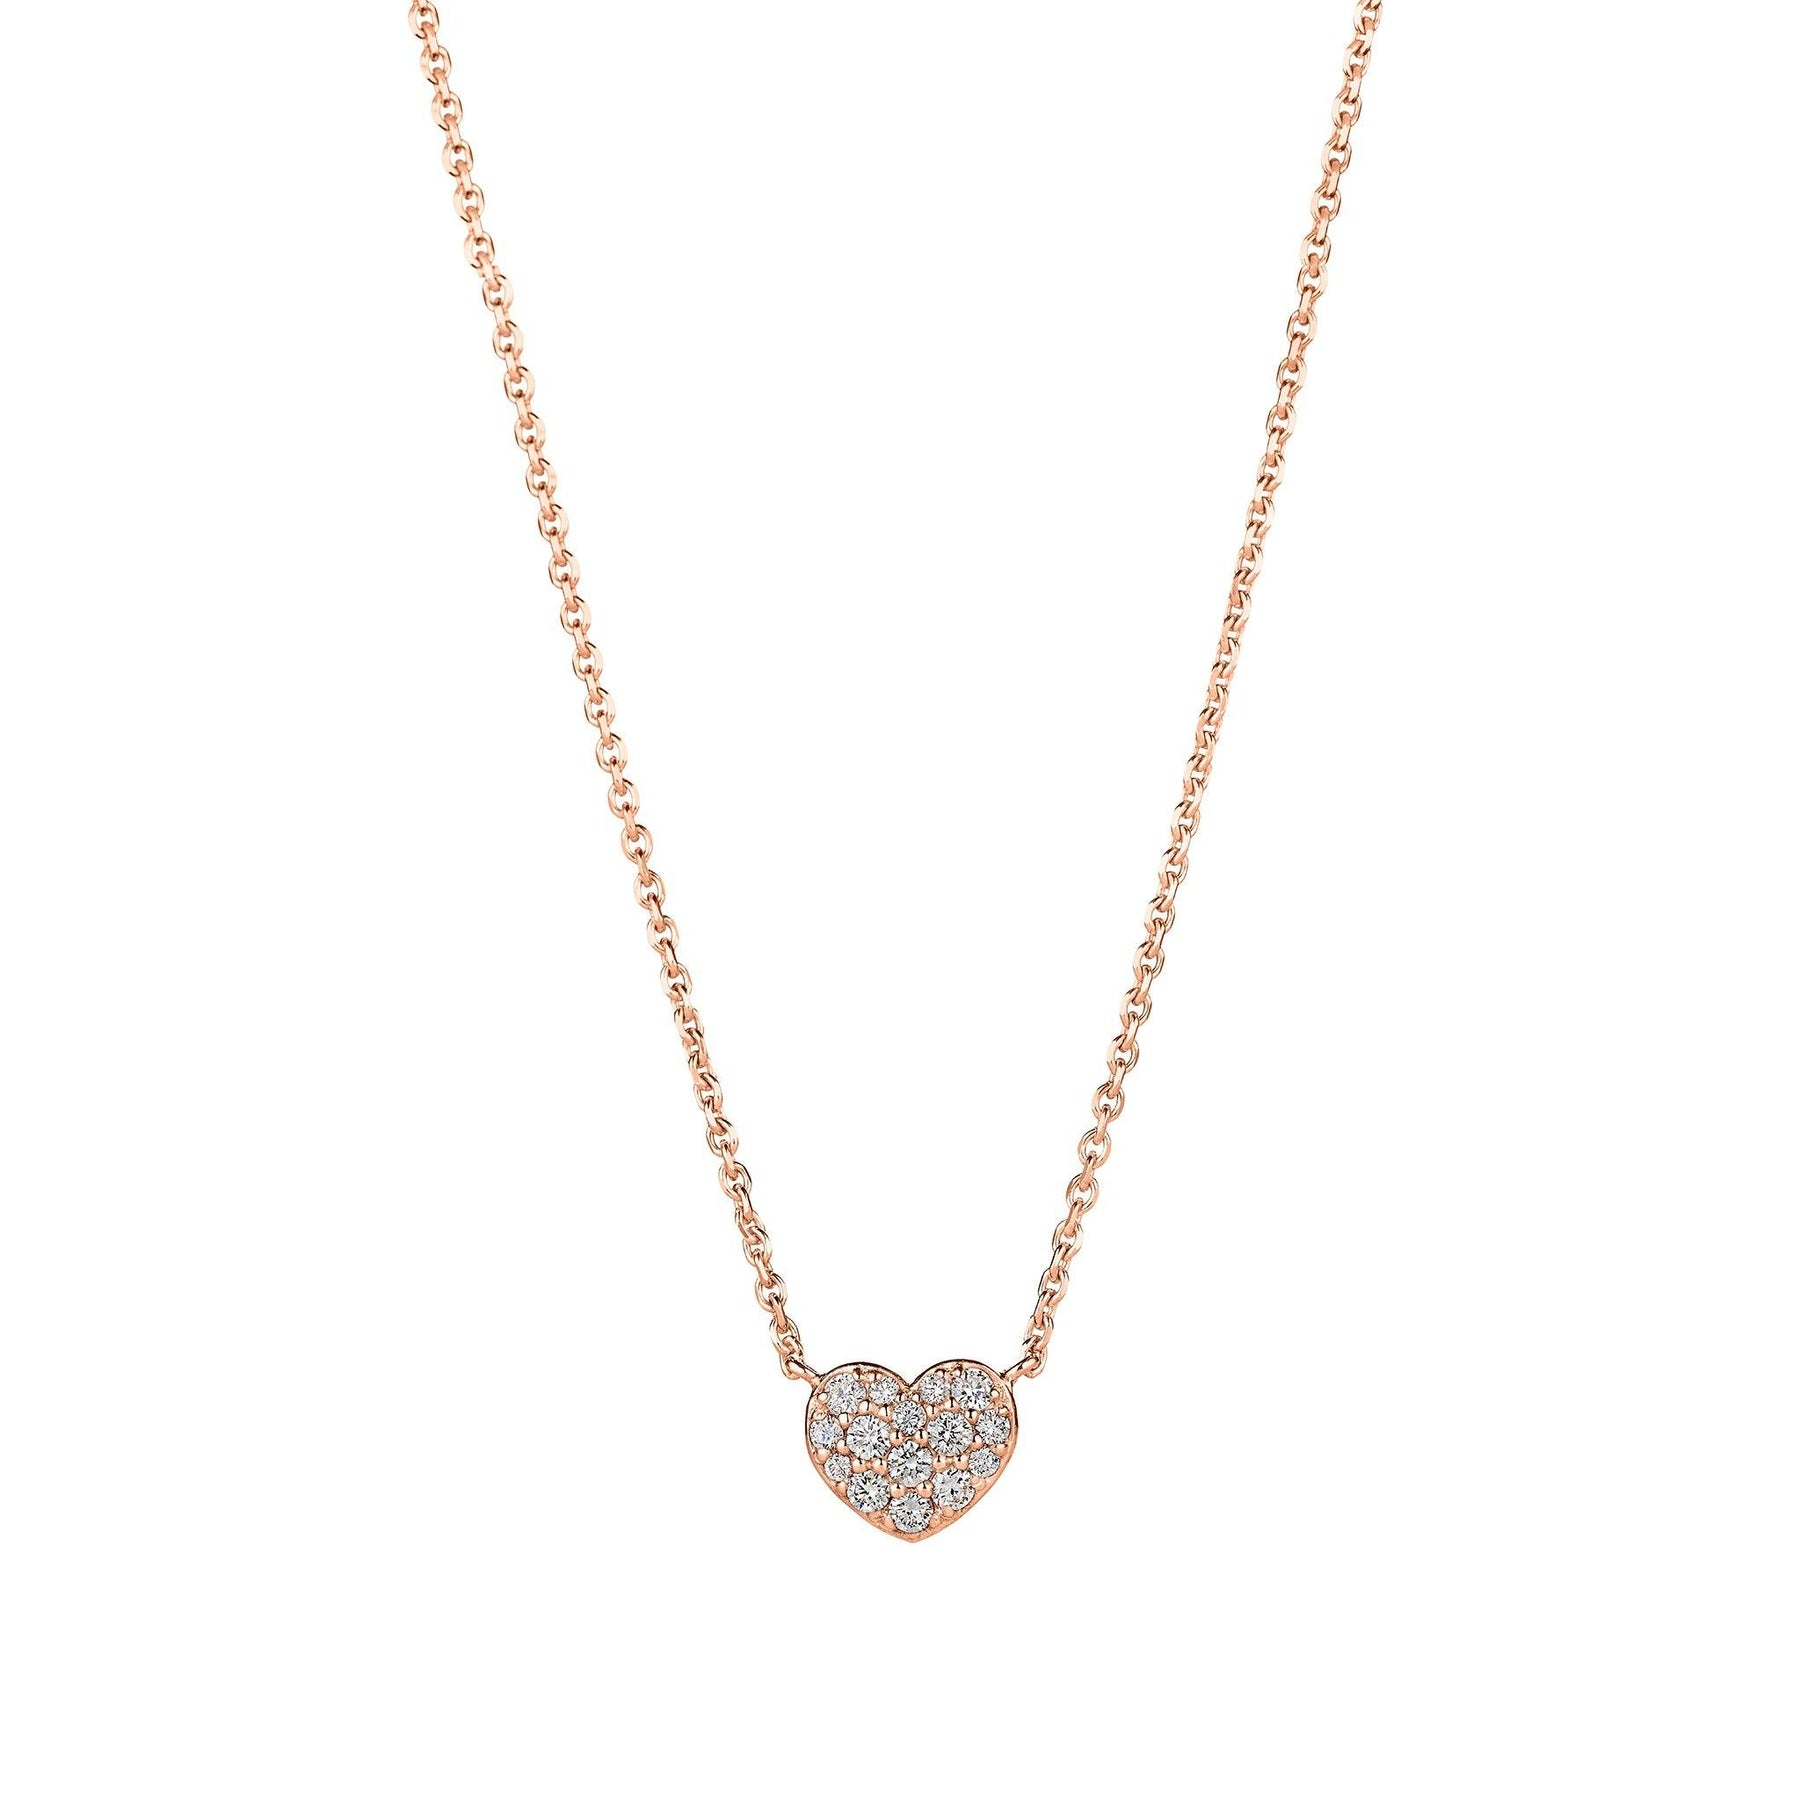 Mimi-So-Diamond-Heart-Necklace_18k Rose Gold